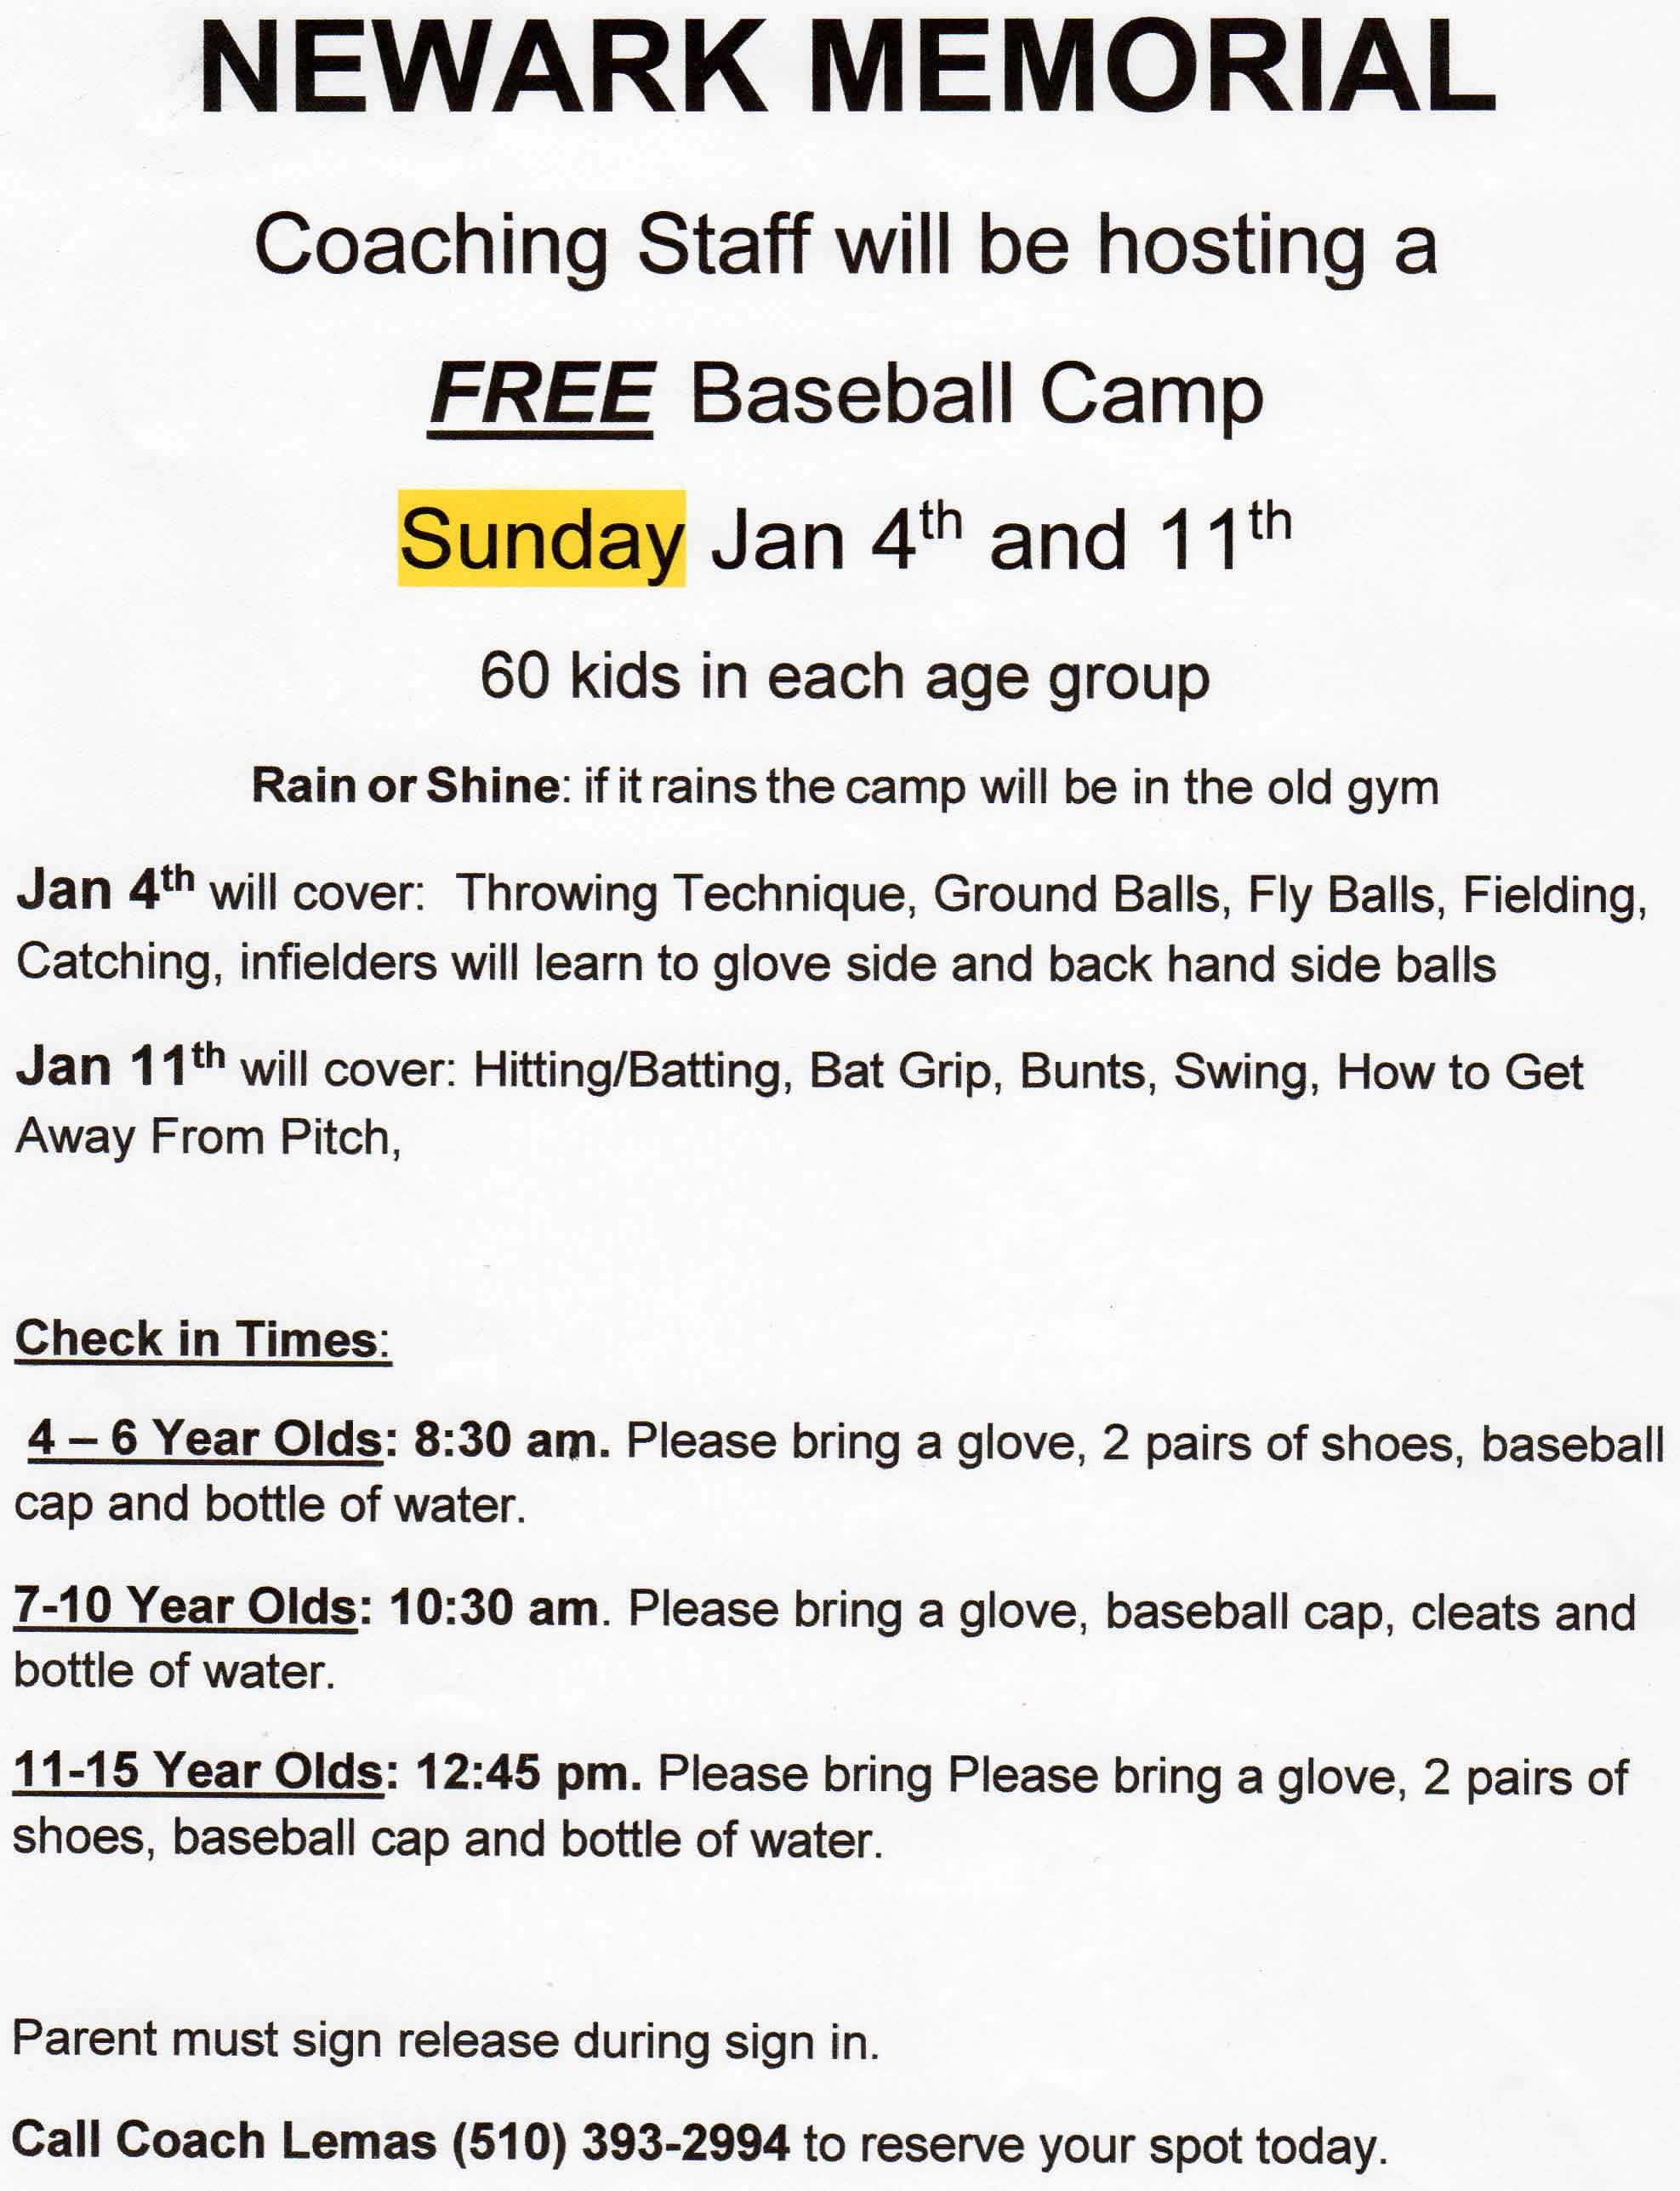 Newark Memorial Baseball Camp Flyer